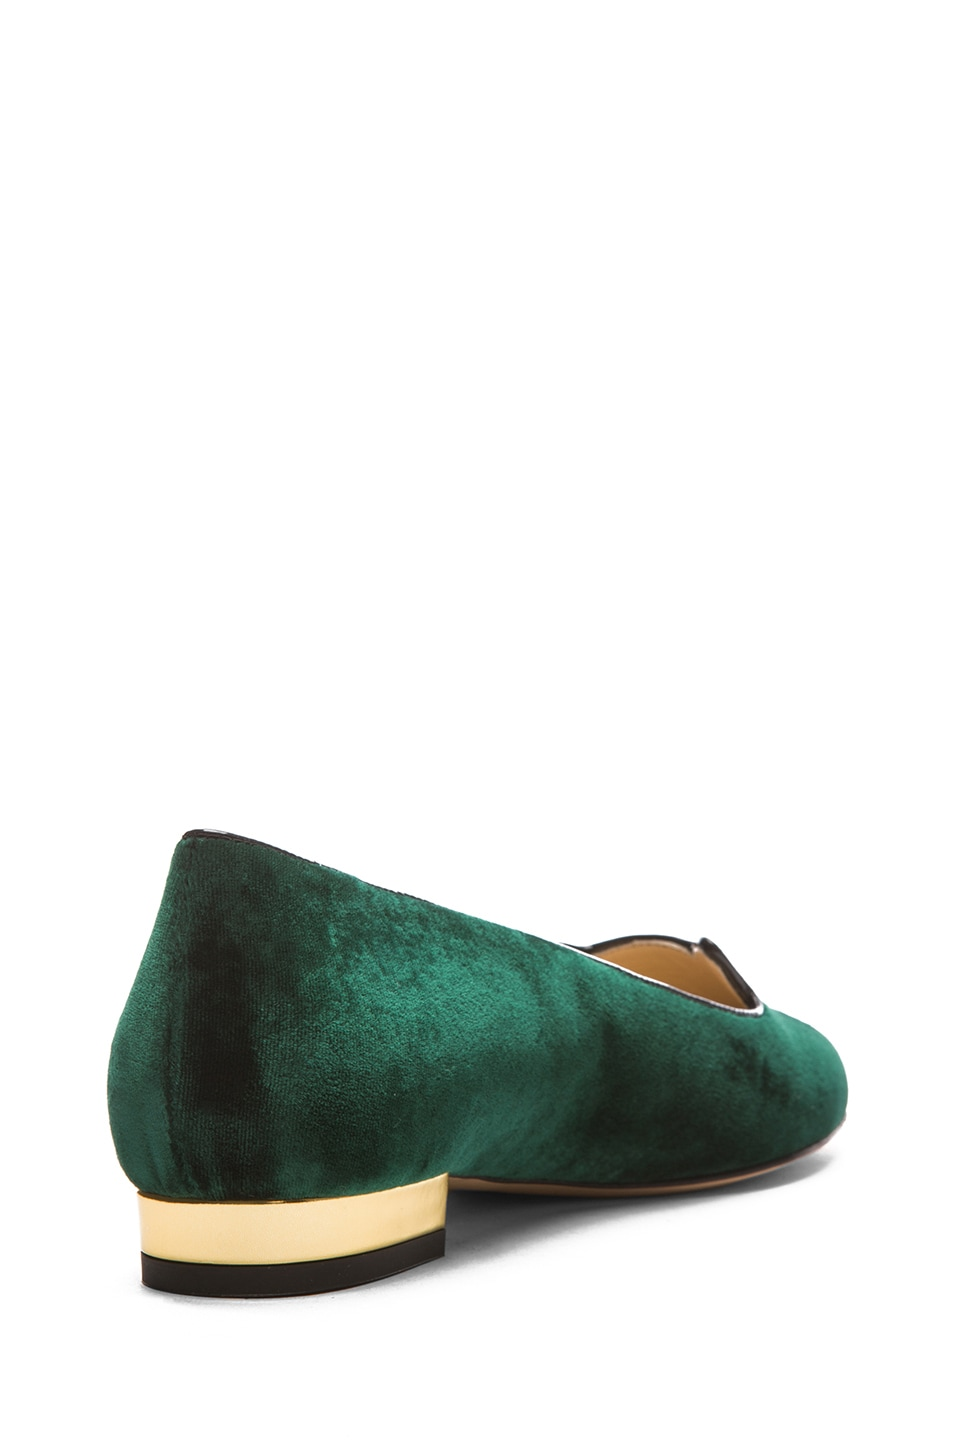 Image 3 of Charlotte Olympia Kitty Flats Suede in Green & Gold